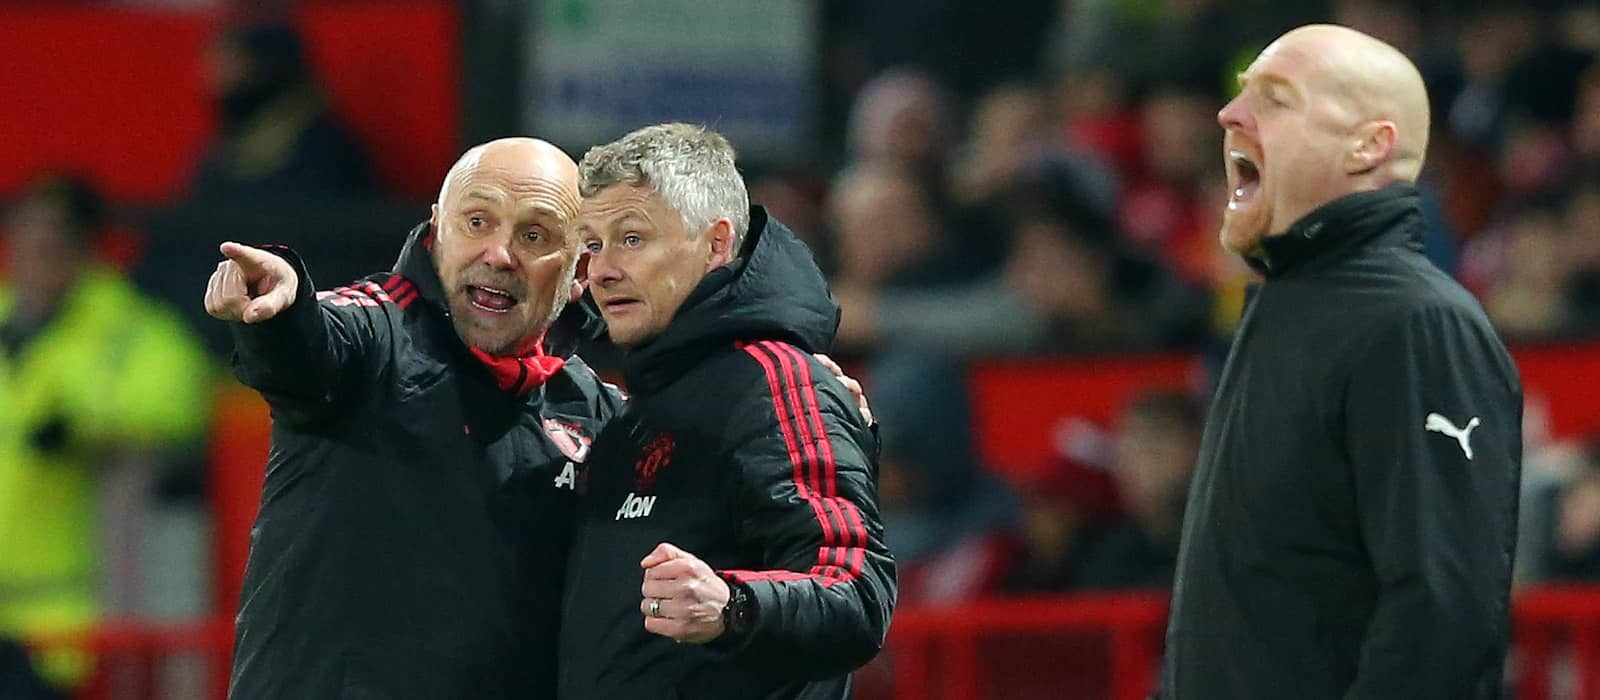 Manchester United chiefs plan on backroom shuffle to spark success: report